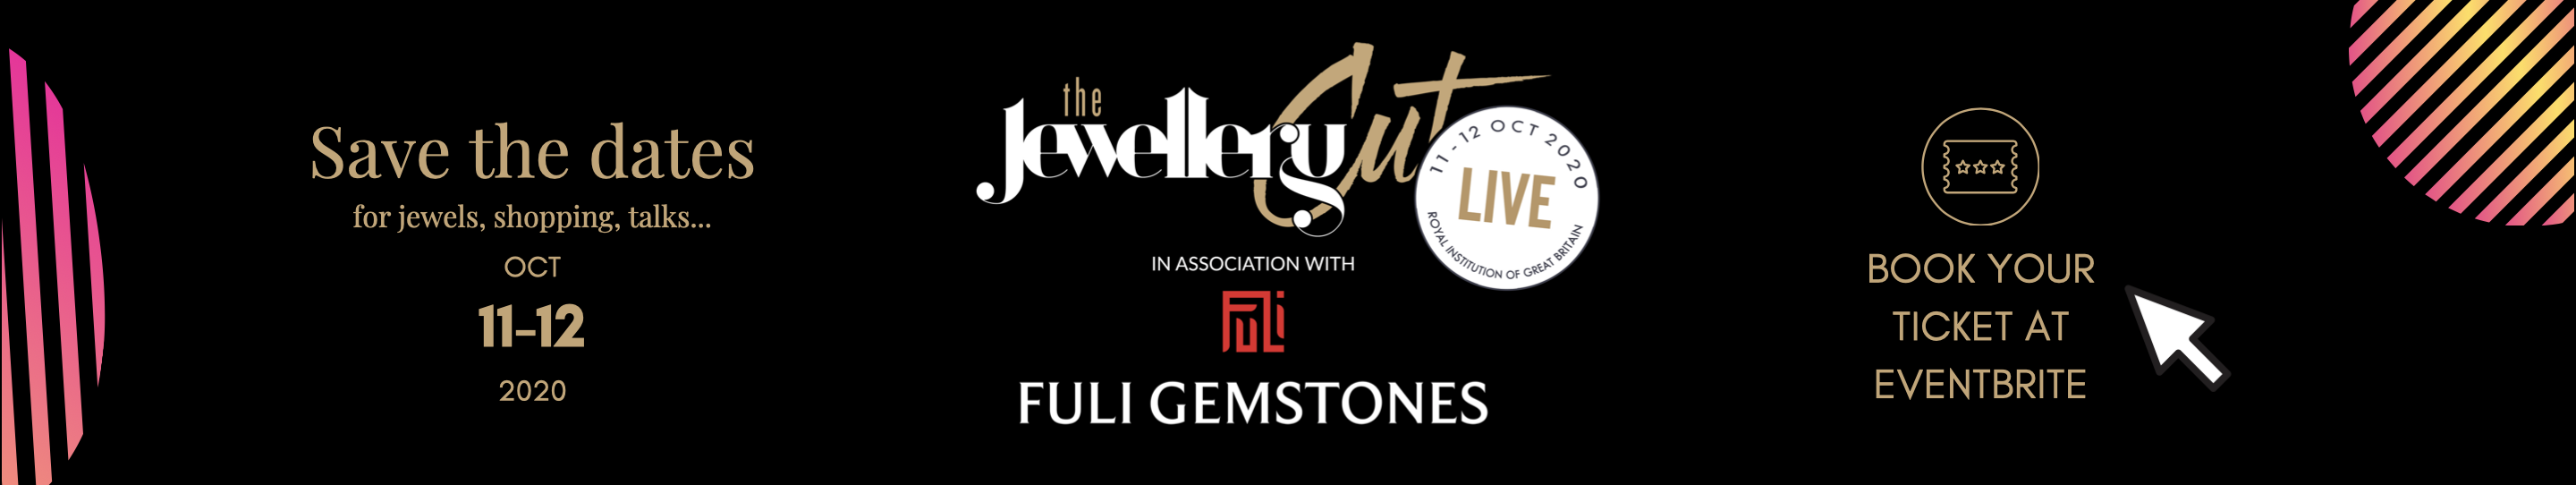 Le Ster Named As Winner Of The Jewellery Cut Live Bursary The Jewellery Cut